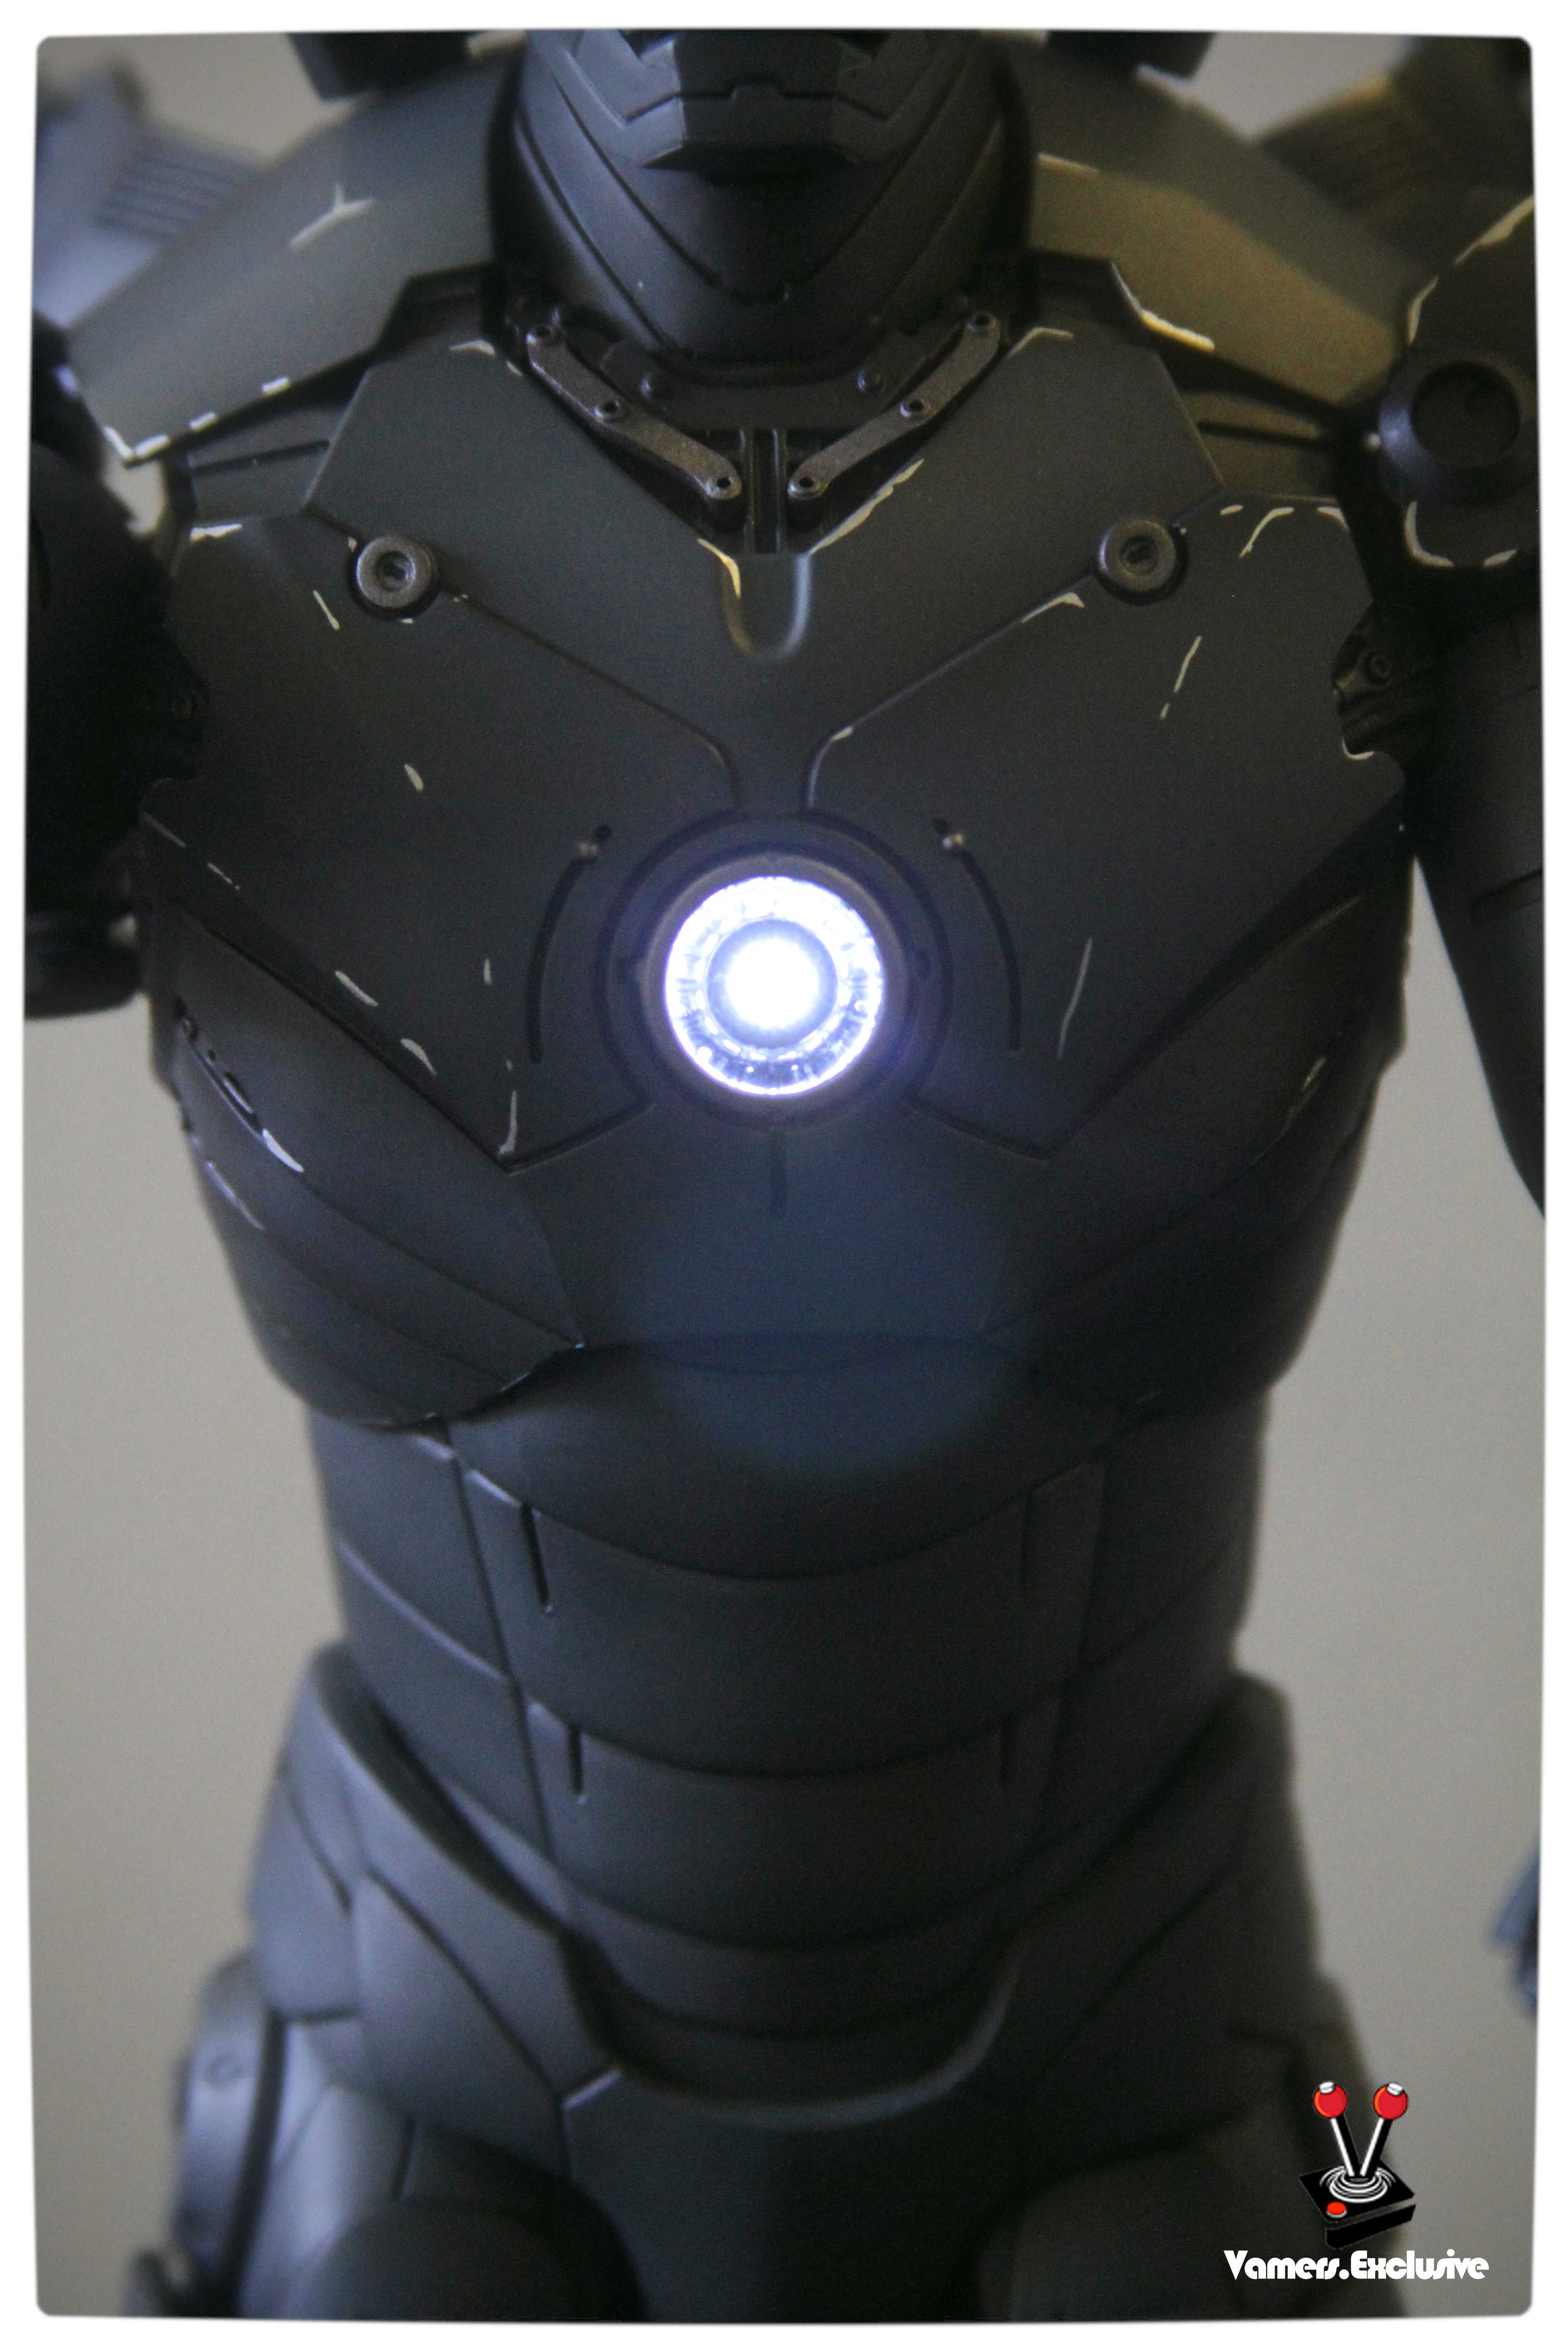 Vamers - Hot Toys - Limited Edition Collectible - Iron Man Mark III - SIlly Thing's TK Edition - MMS101 - Flaps Extended and Arc Reactor Engaged - Mid-Body Close-Up